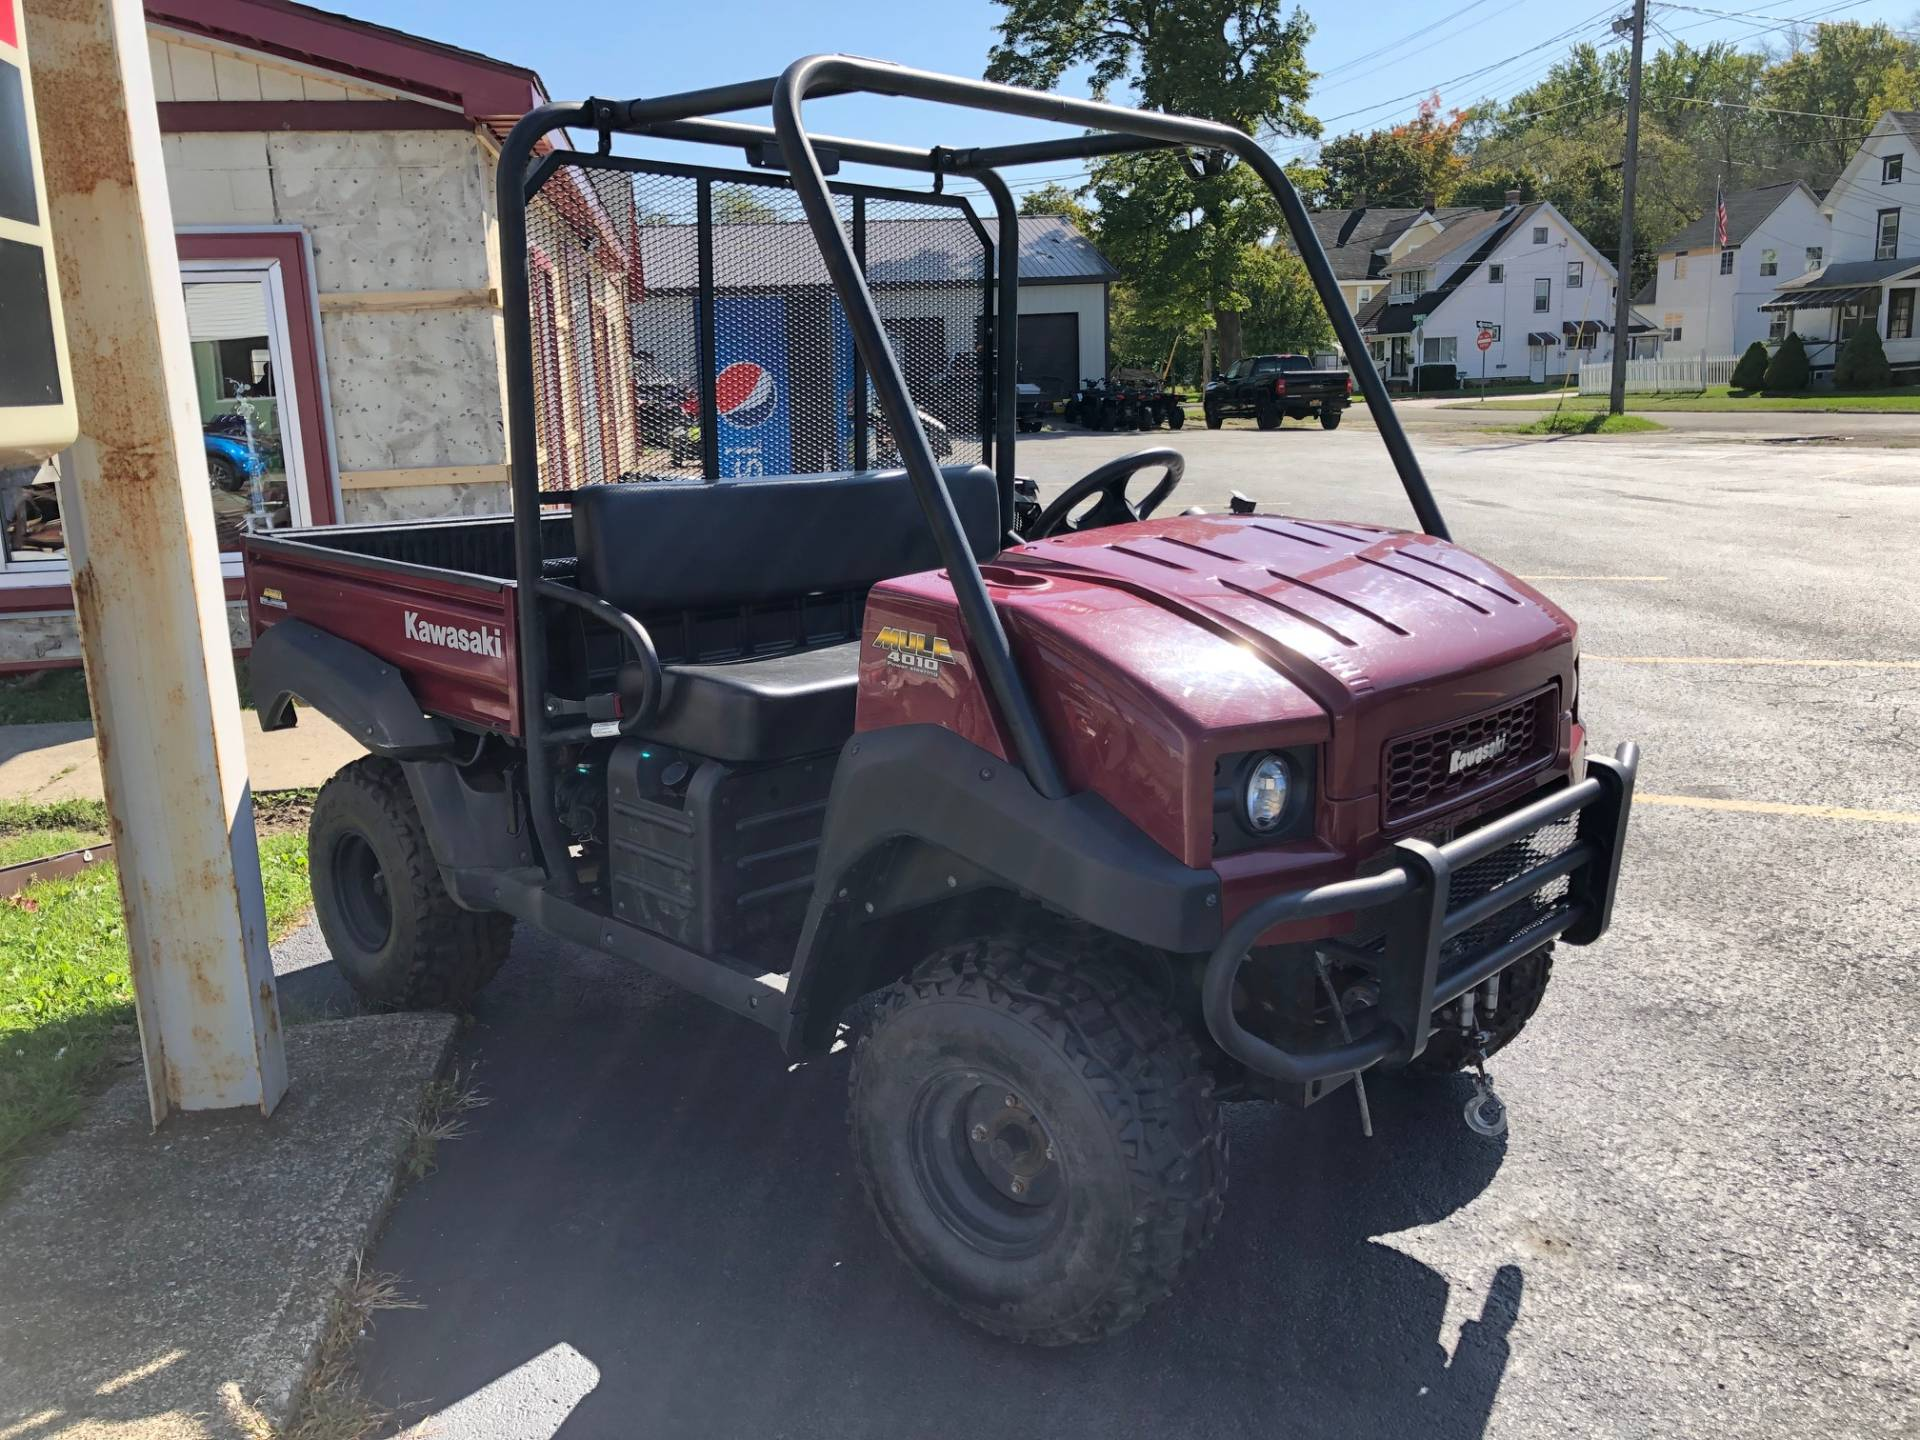 2014 Kawasaki Mule™ 4010 4x4 in Jamestown, New York - Photo 3